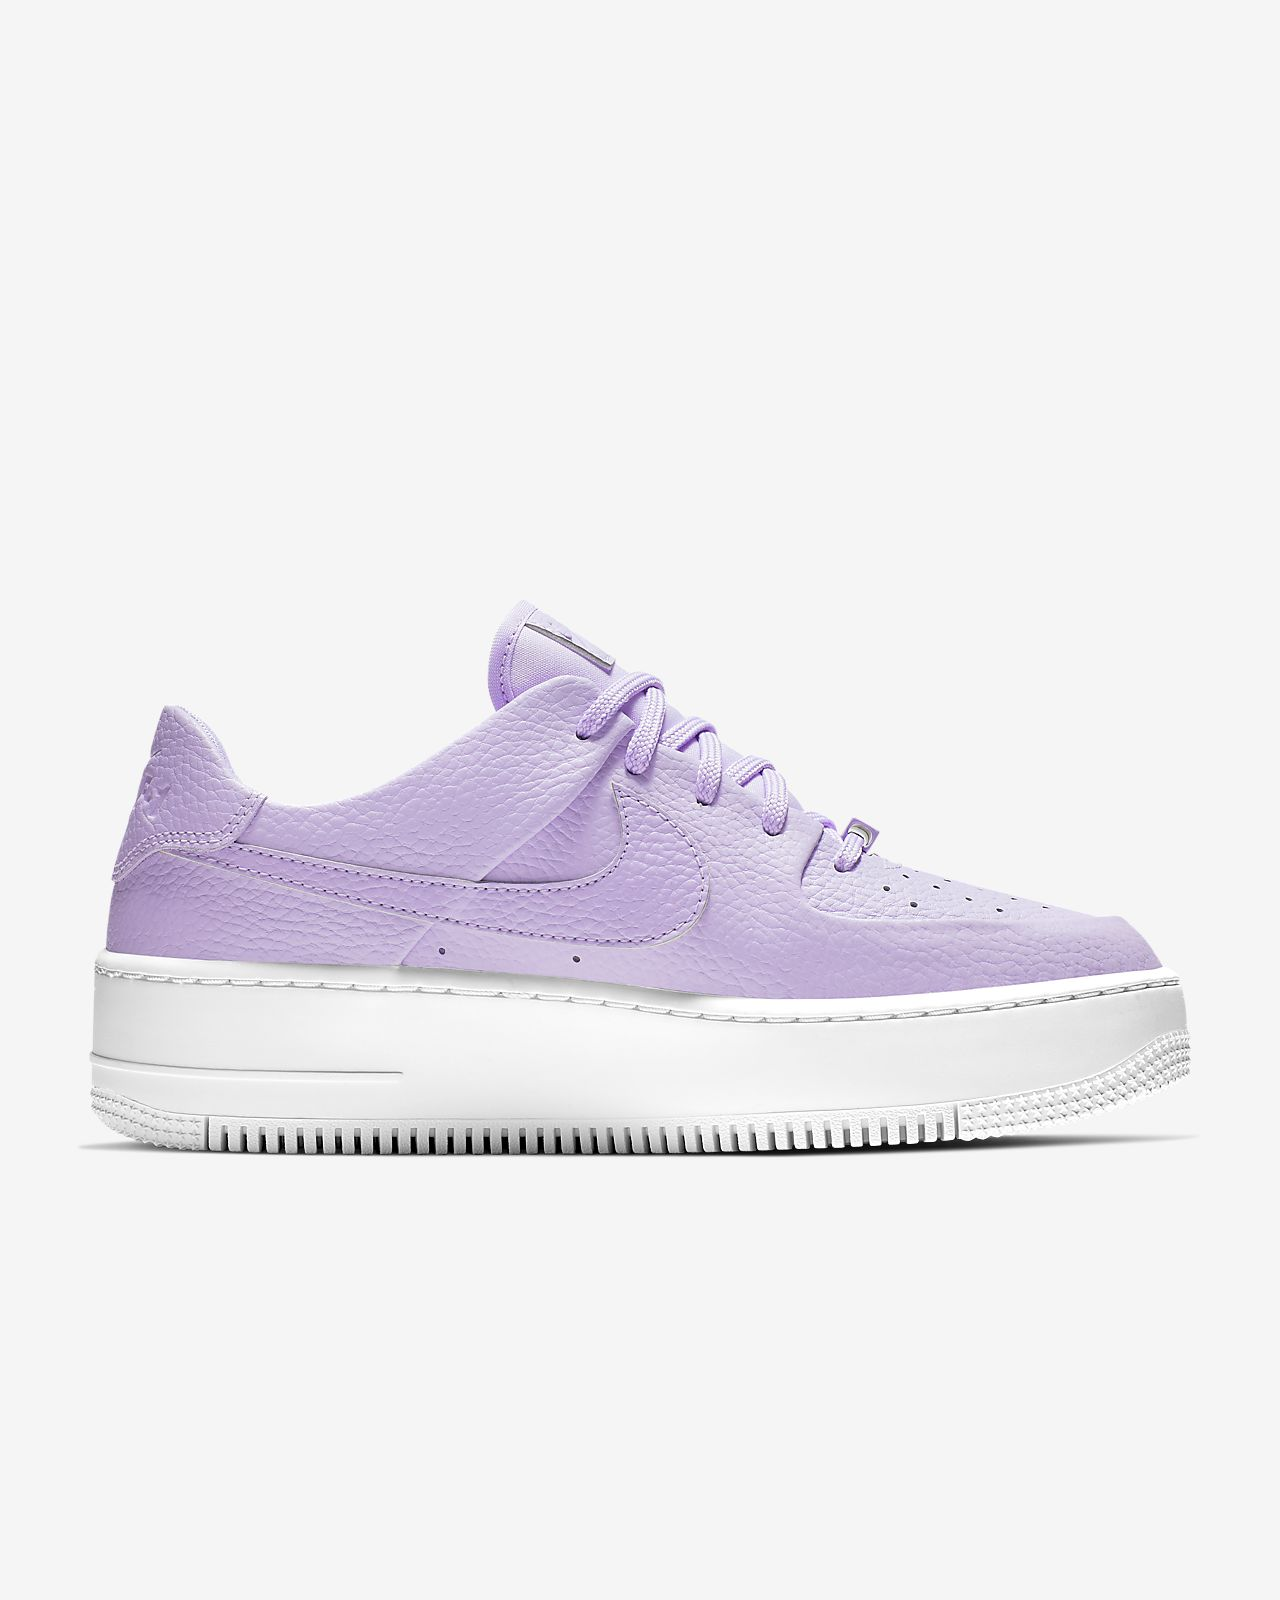 036746c8c786b Nike Air Force 1 Sage Low Women's Shoe. Nike.com VN